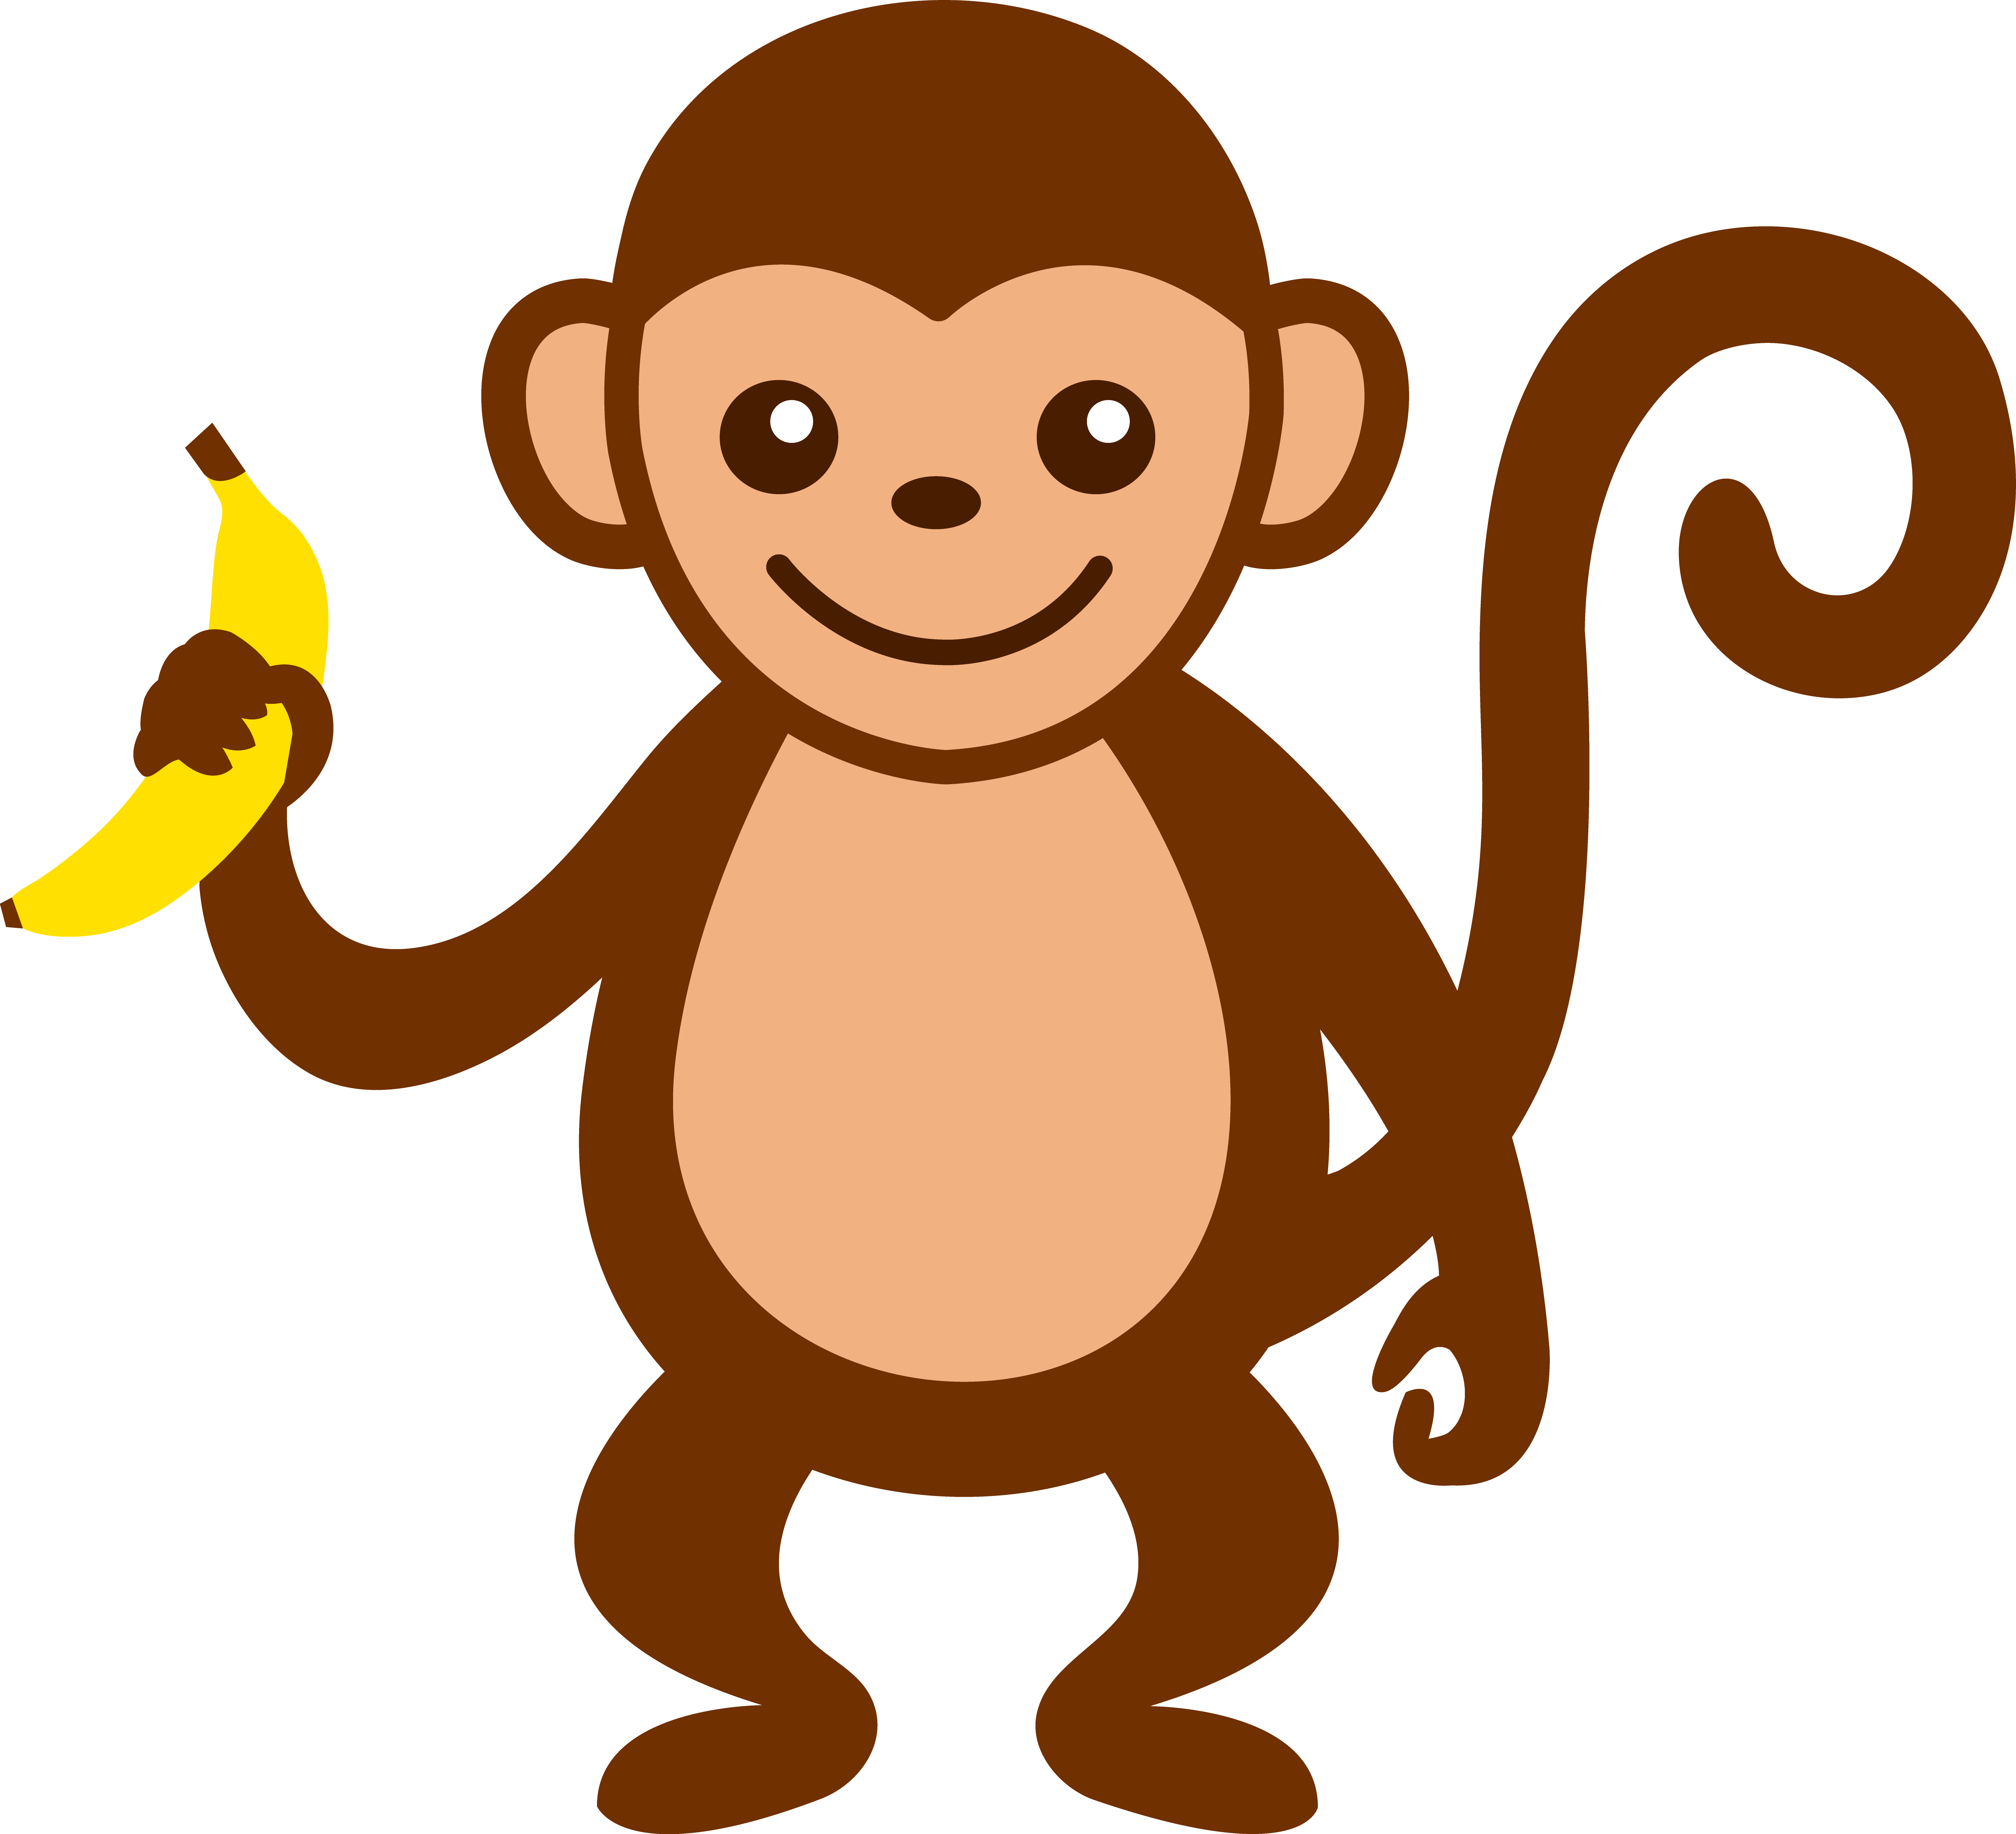 Clipart pencil monkey. Free animated monkeys pictures